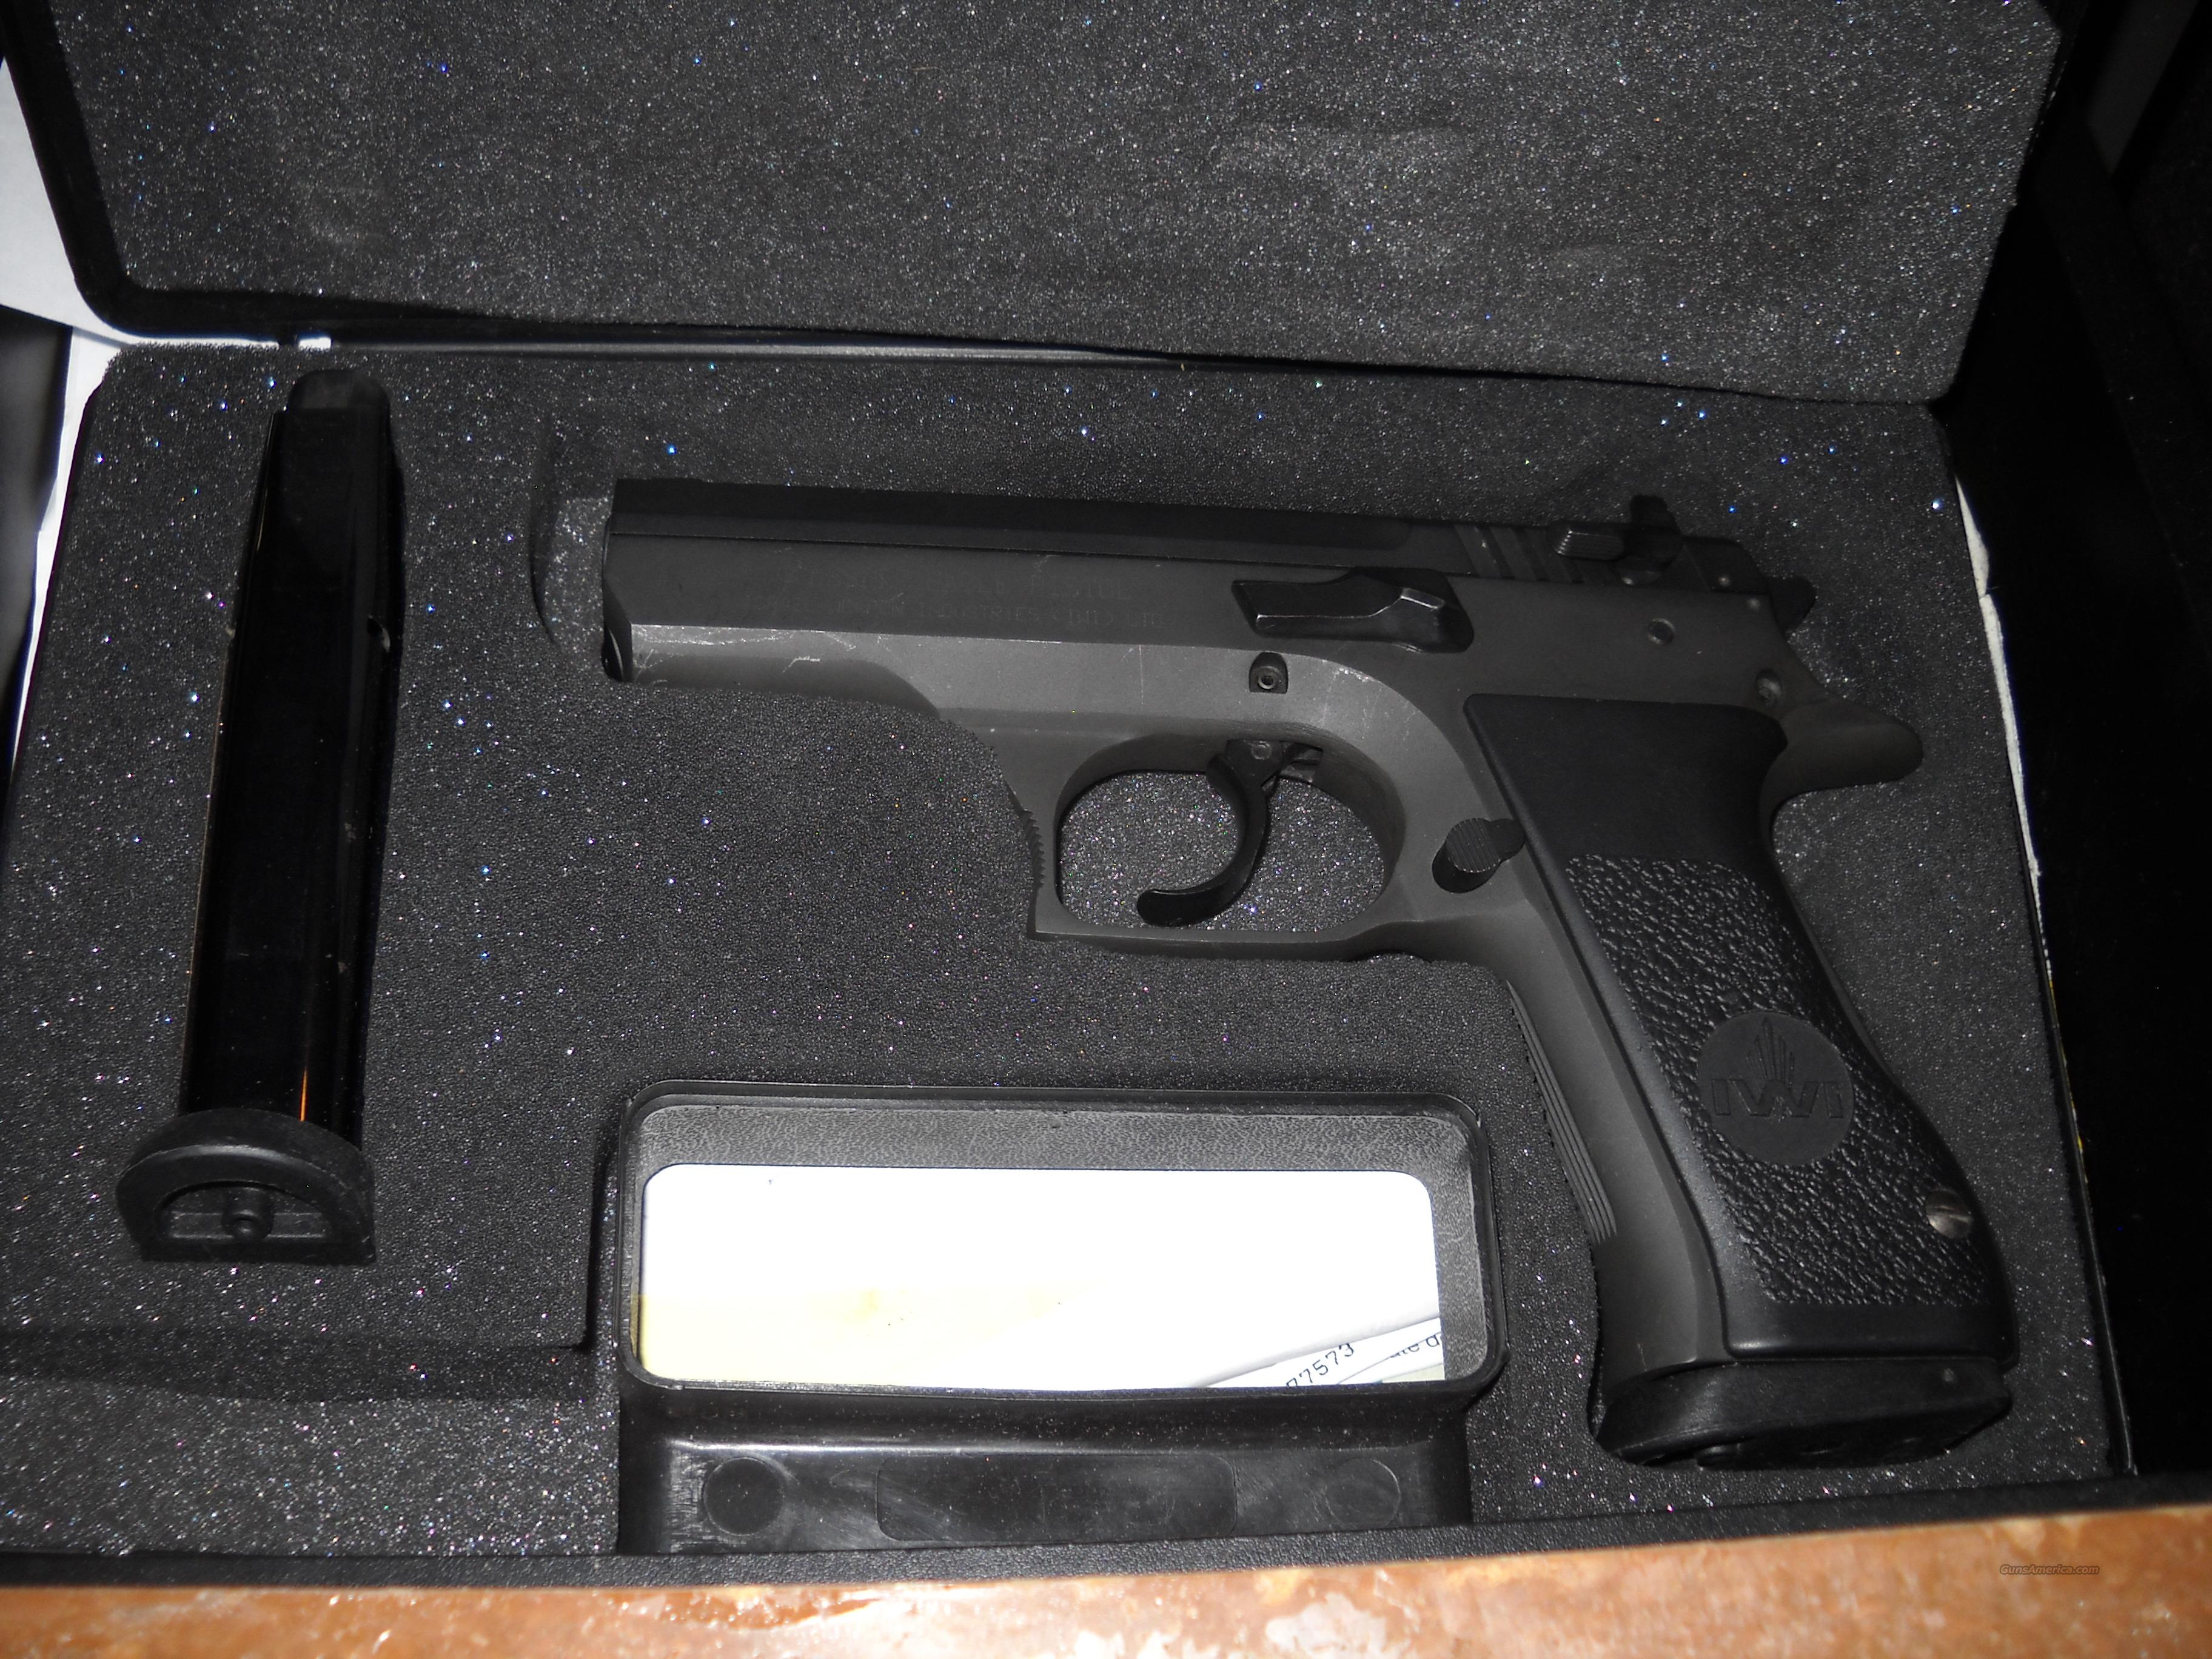 BABY EAGLE    45 AUTO MADE IN ISRAEL  Guns > Pistols > Desert Eagle/IMI Pistols > Baby Eagle